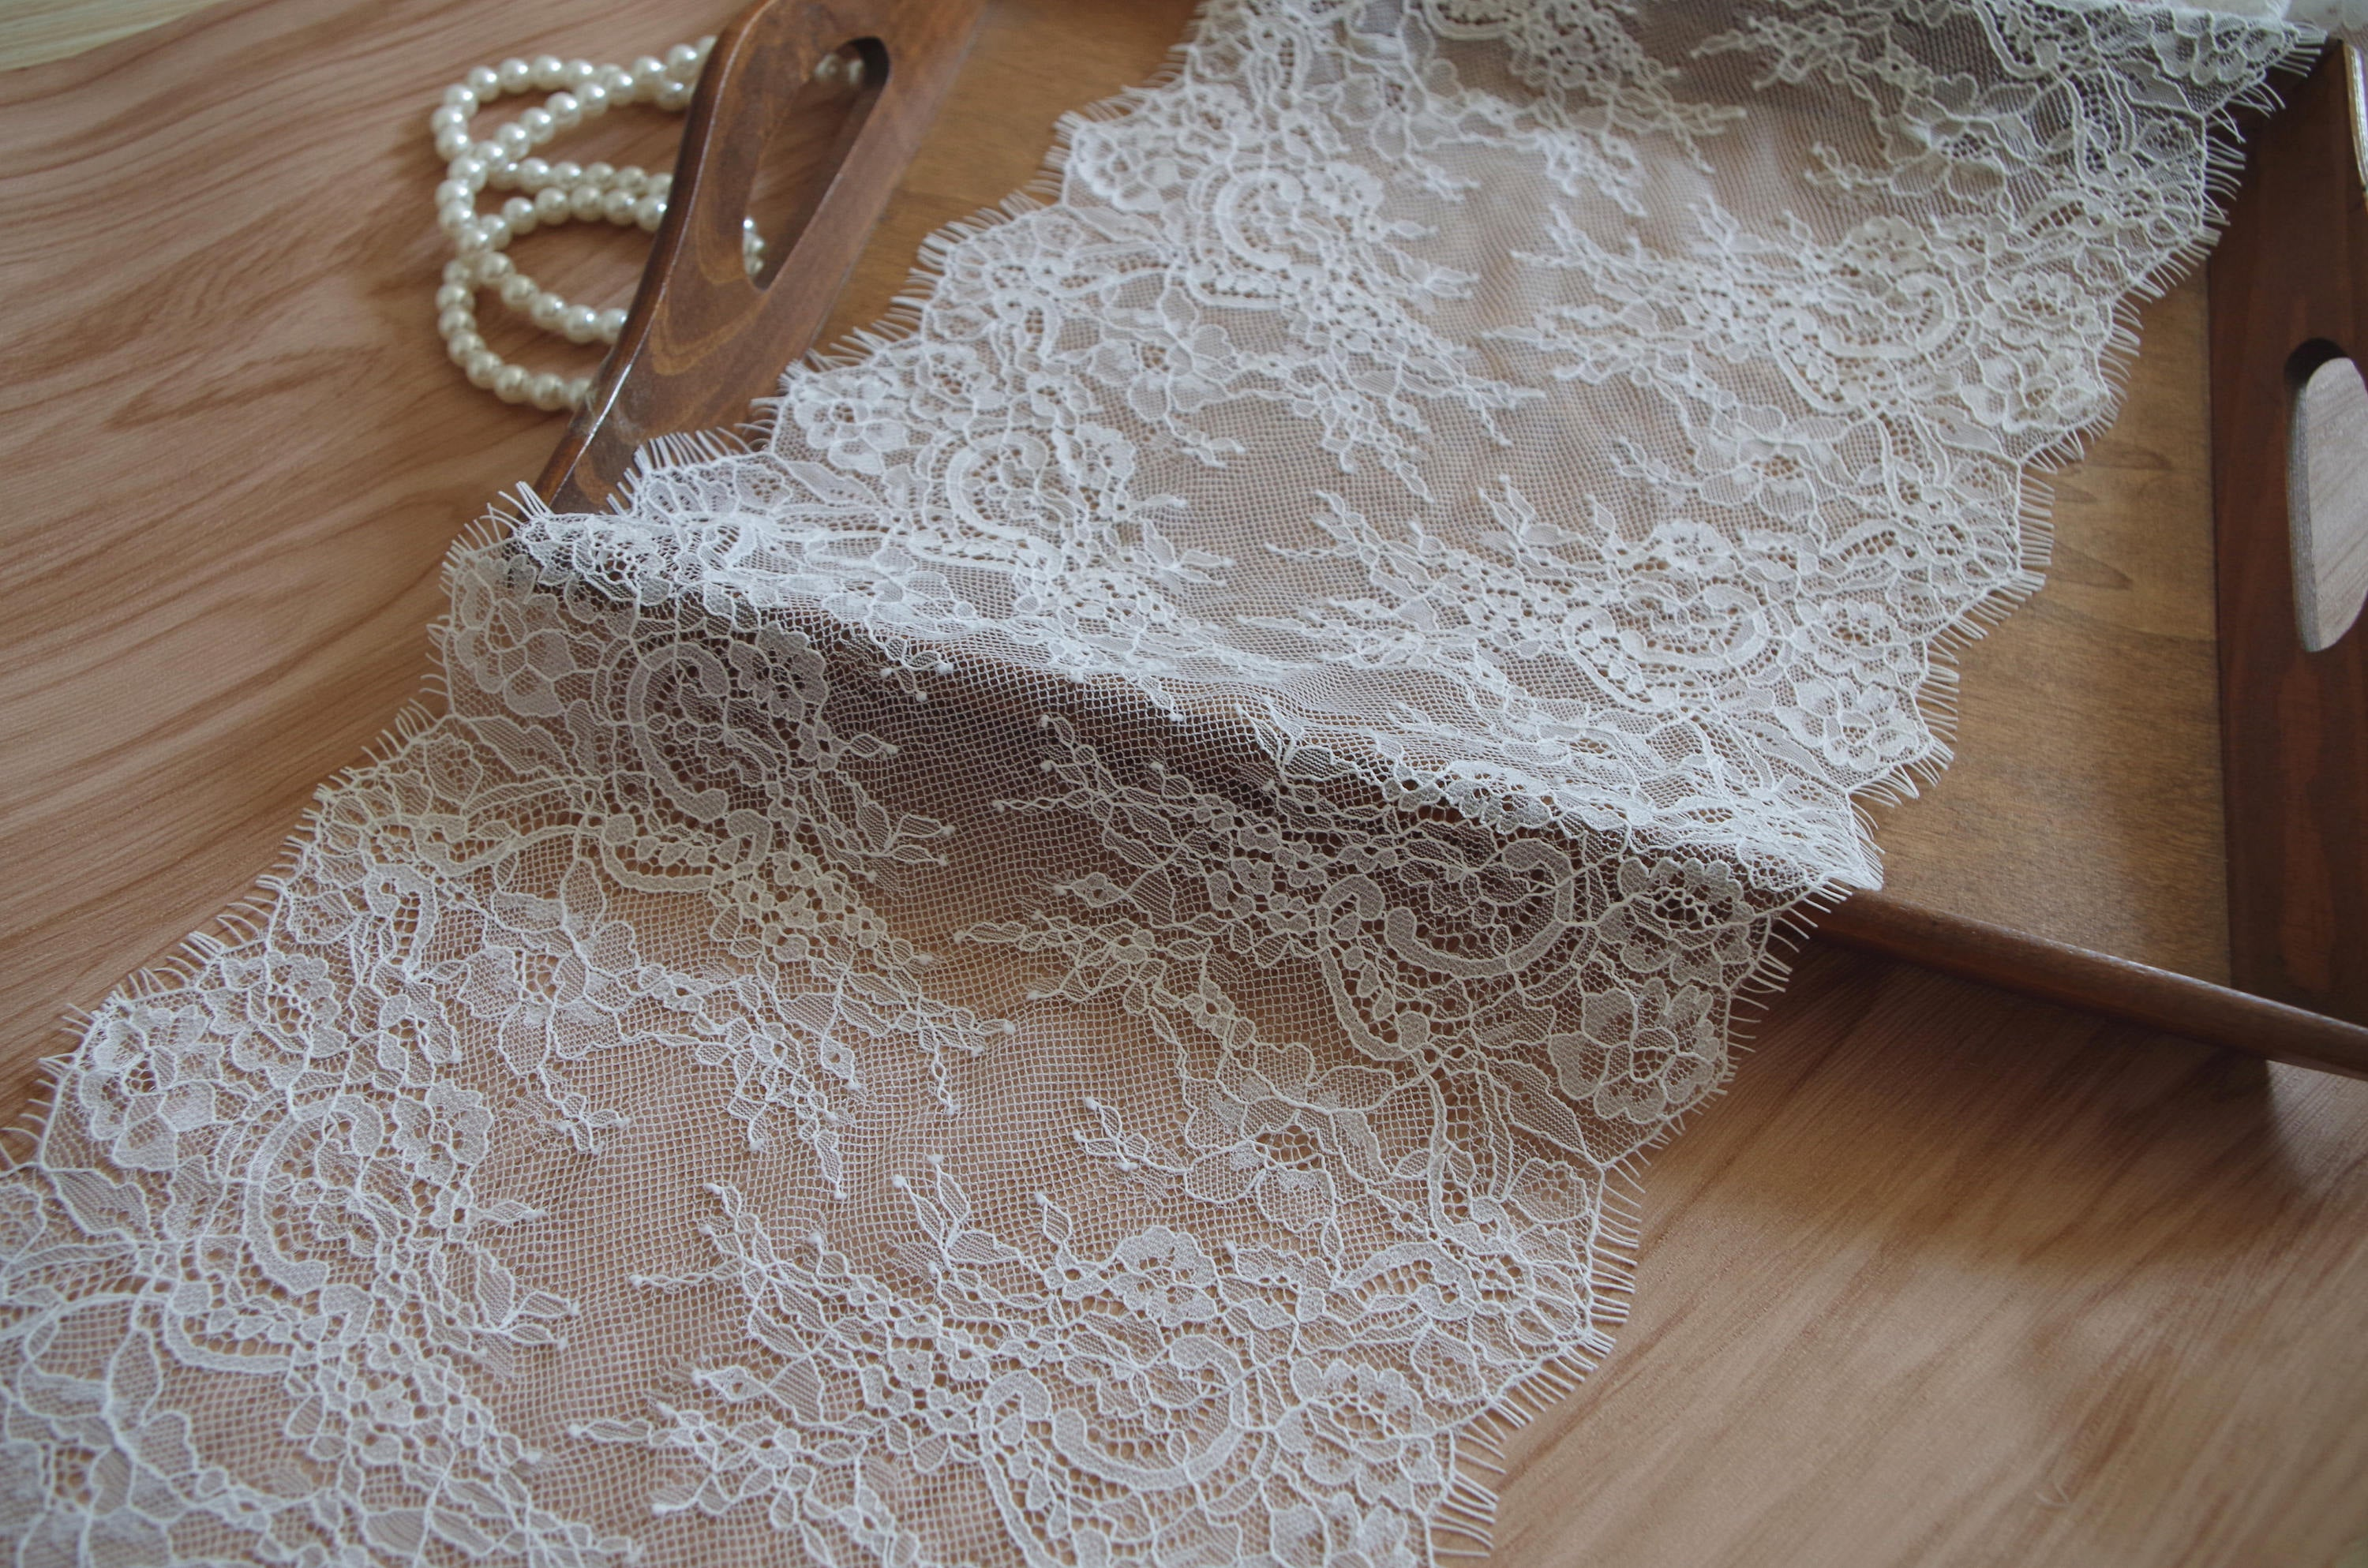 Chantilly lace fabric, lace fabric for bridal dress, French lace fabric on sale, 2017 new arrival, bridal lace fabric by the yard